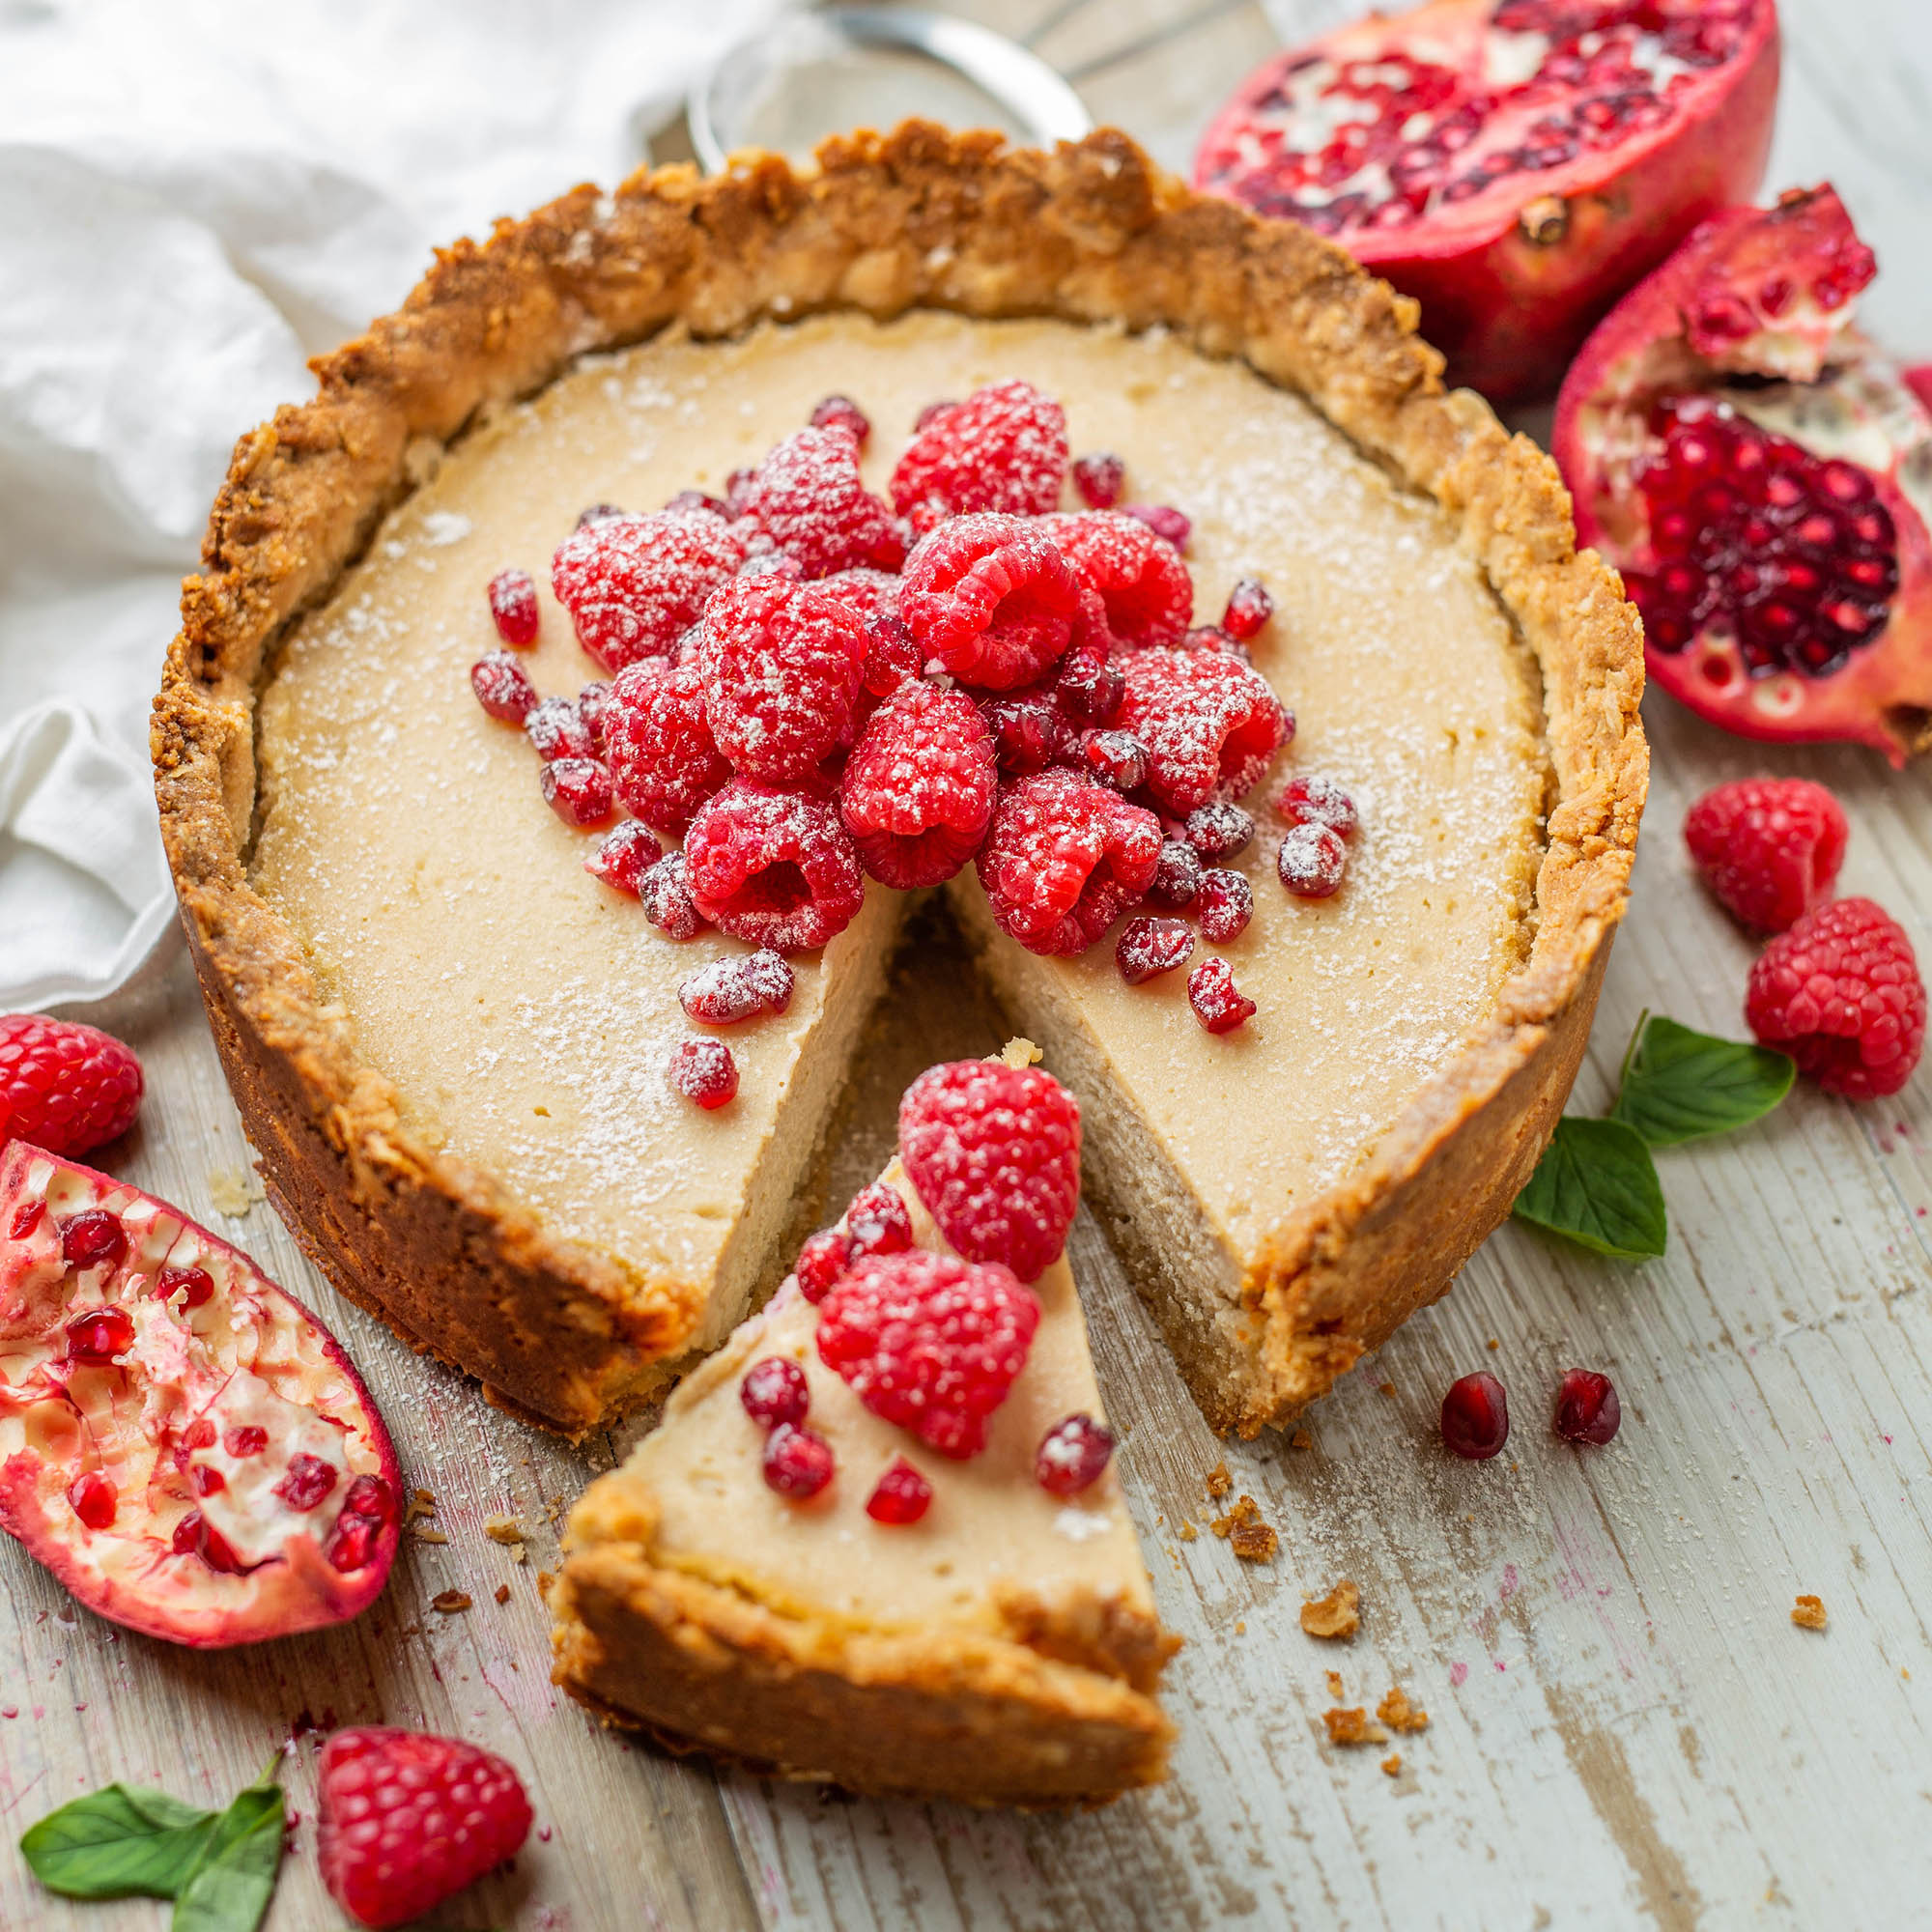 Vegan Baked Vanilla Cheesecake. No coconut